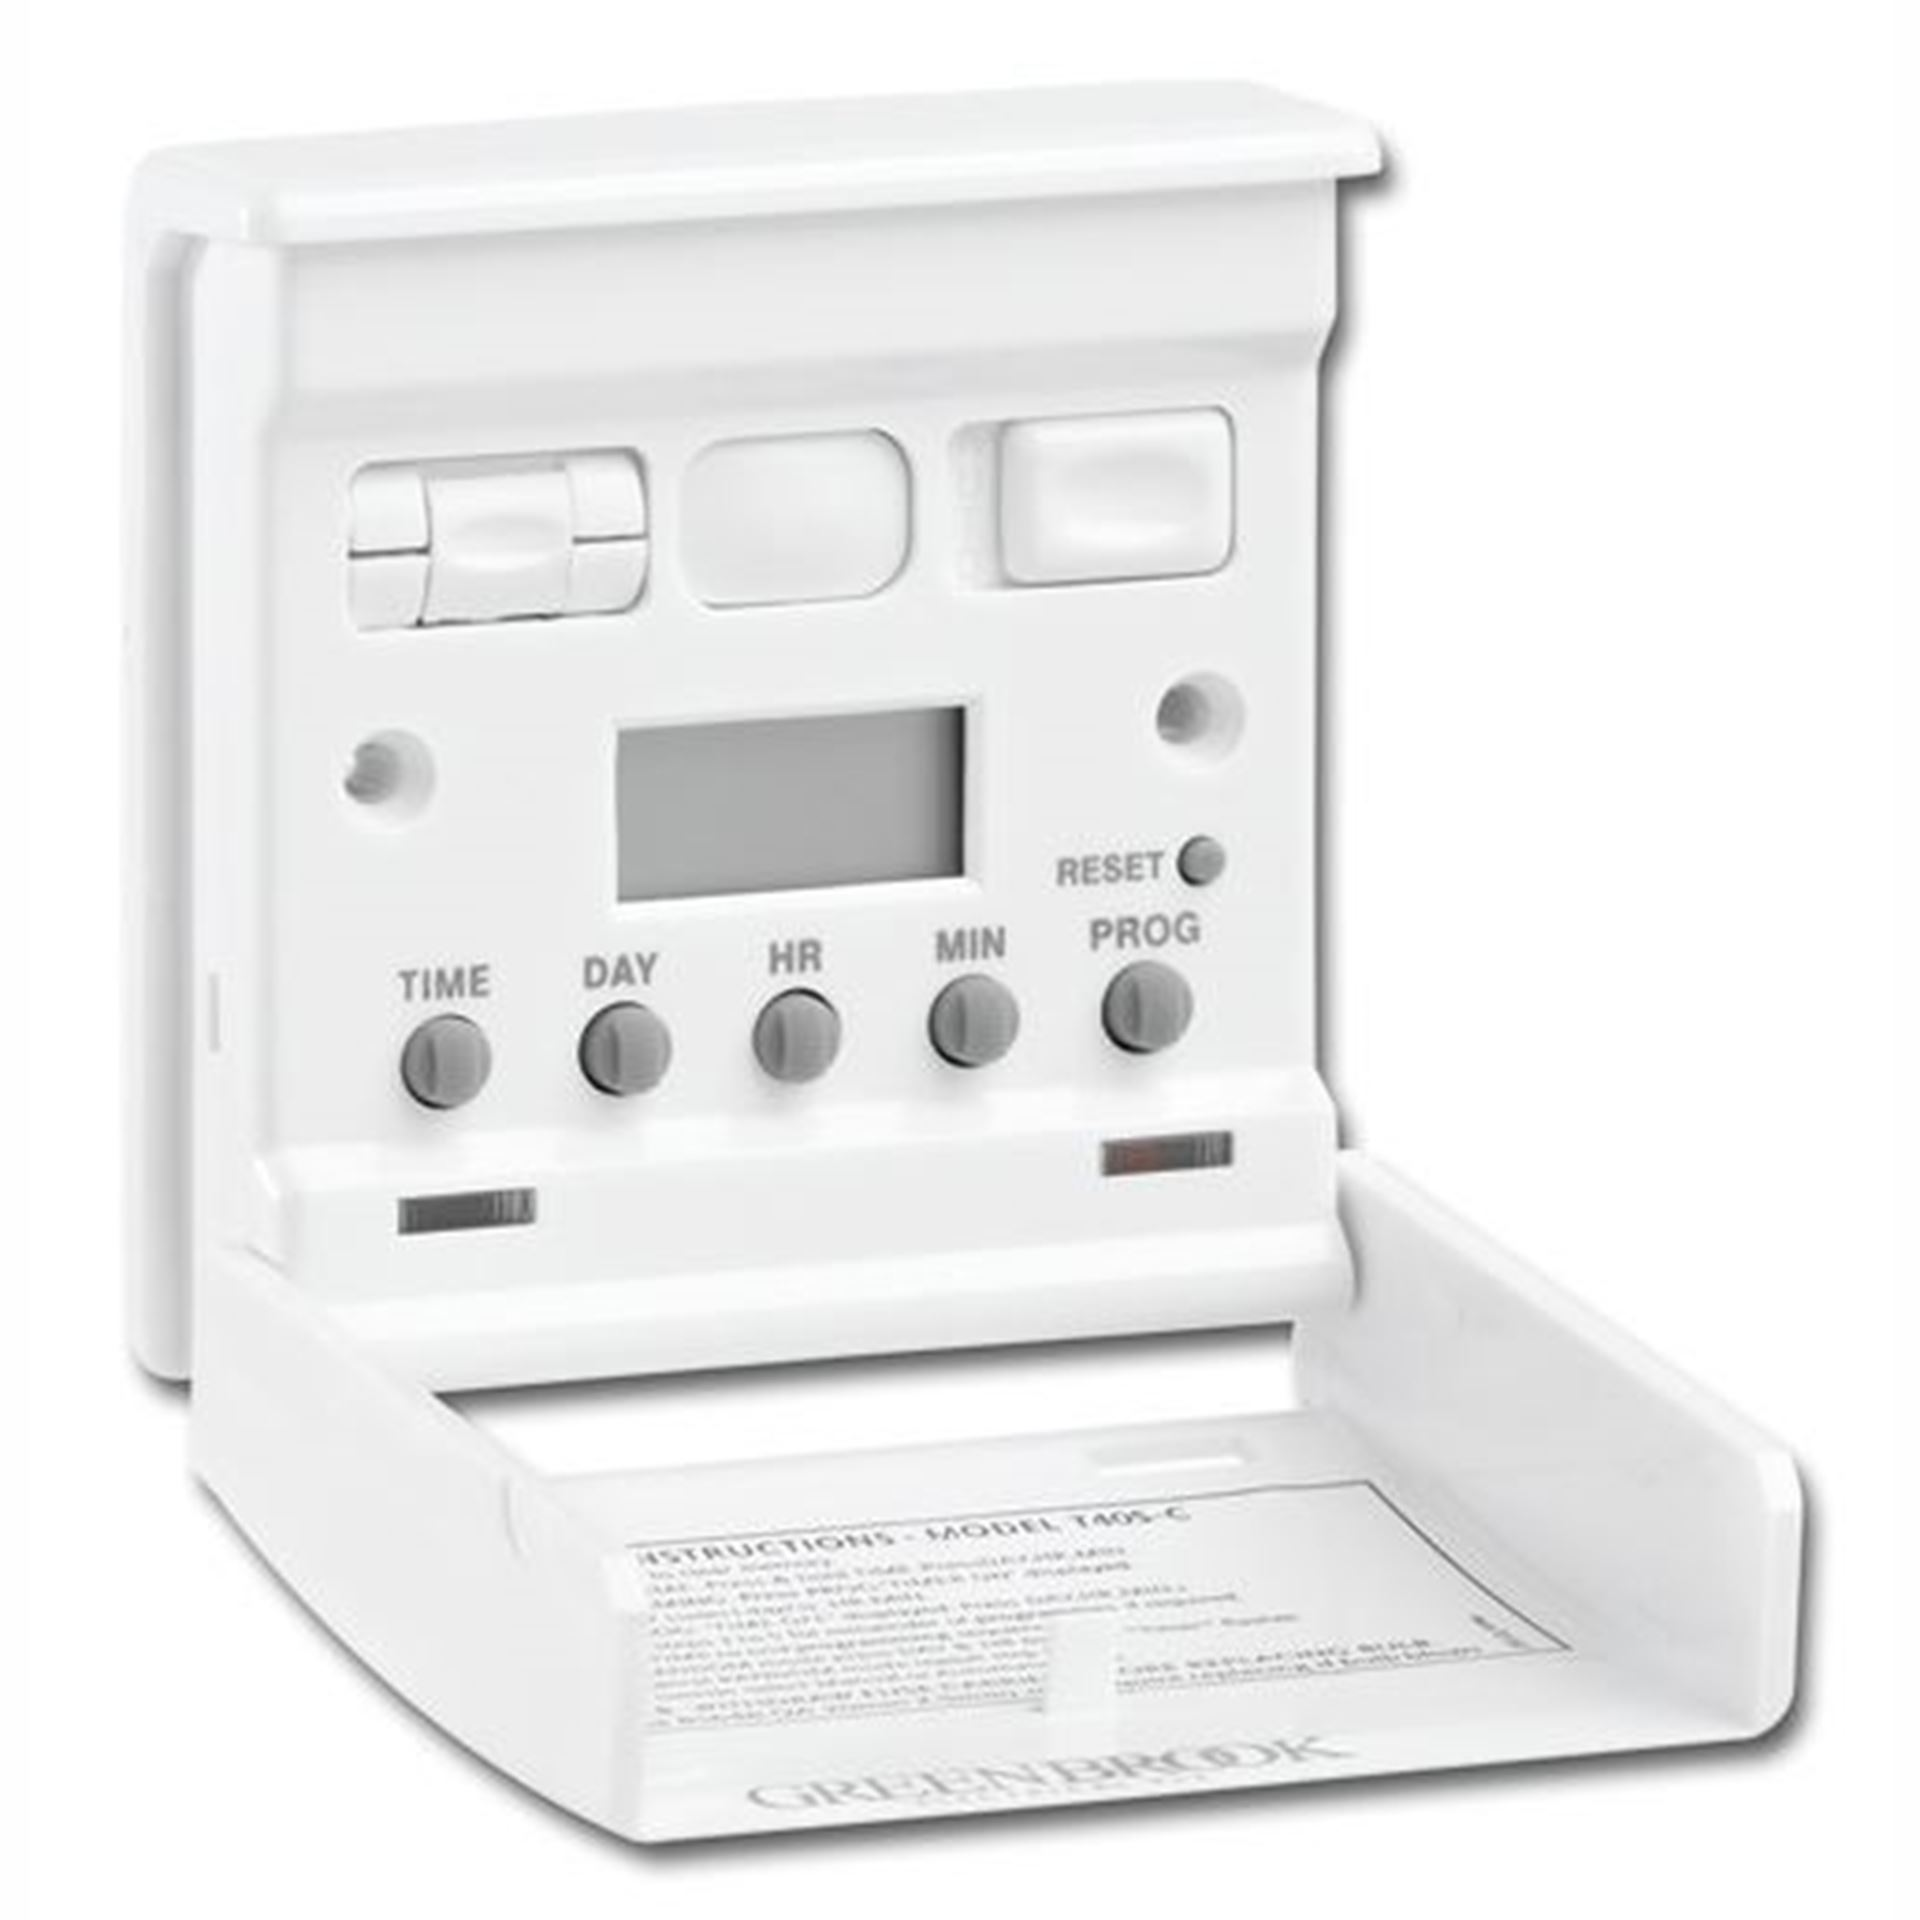 Greenbrook 7 day Electronic Wall switch security timer T40S-C